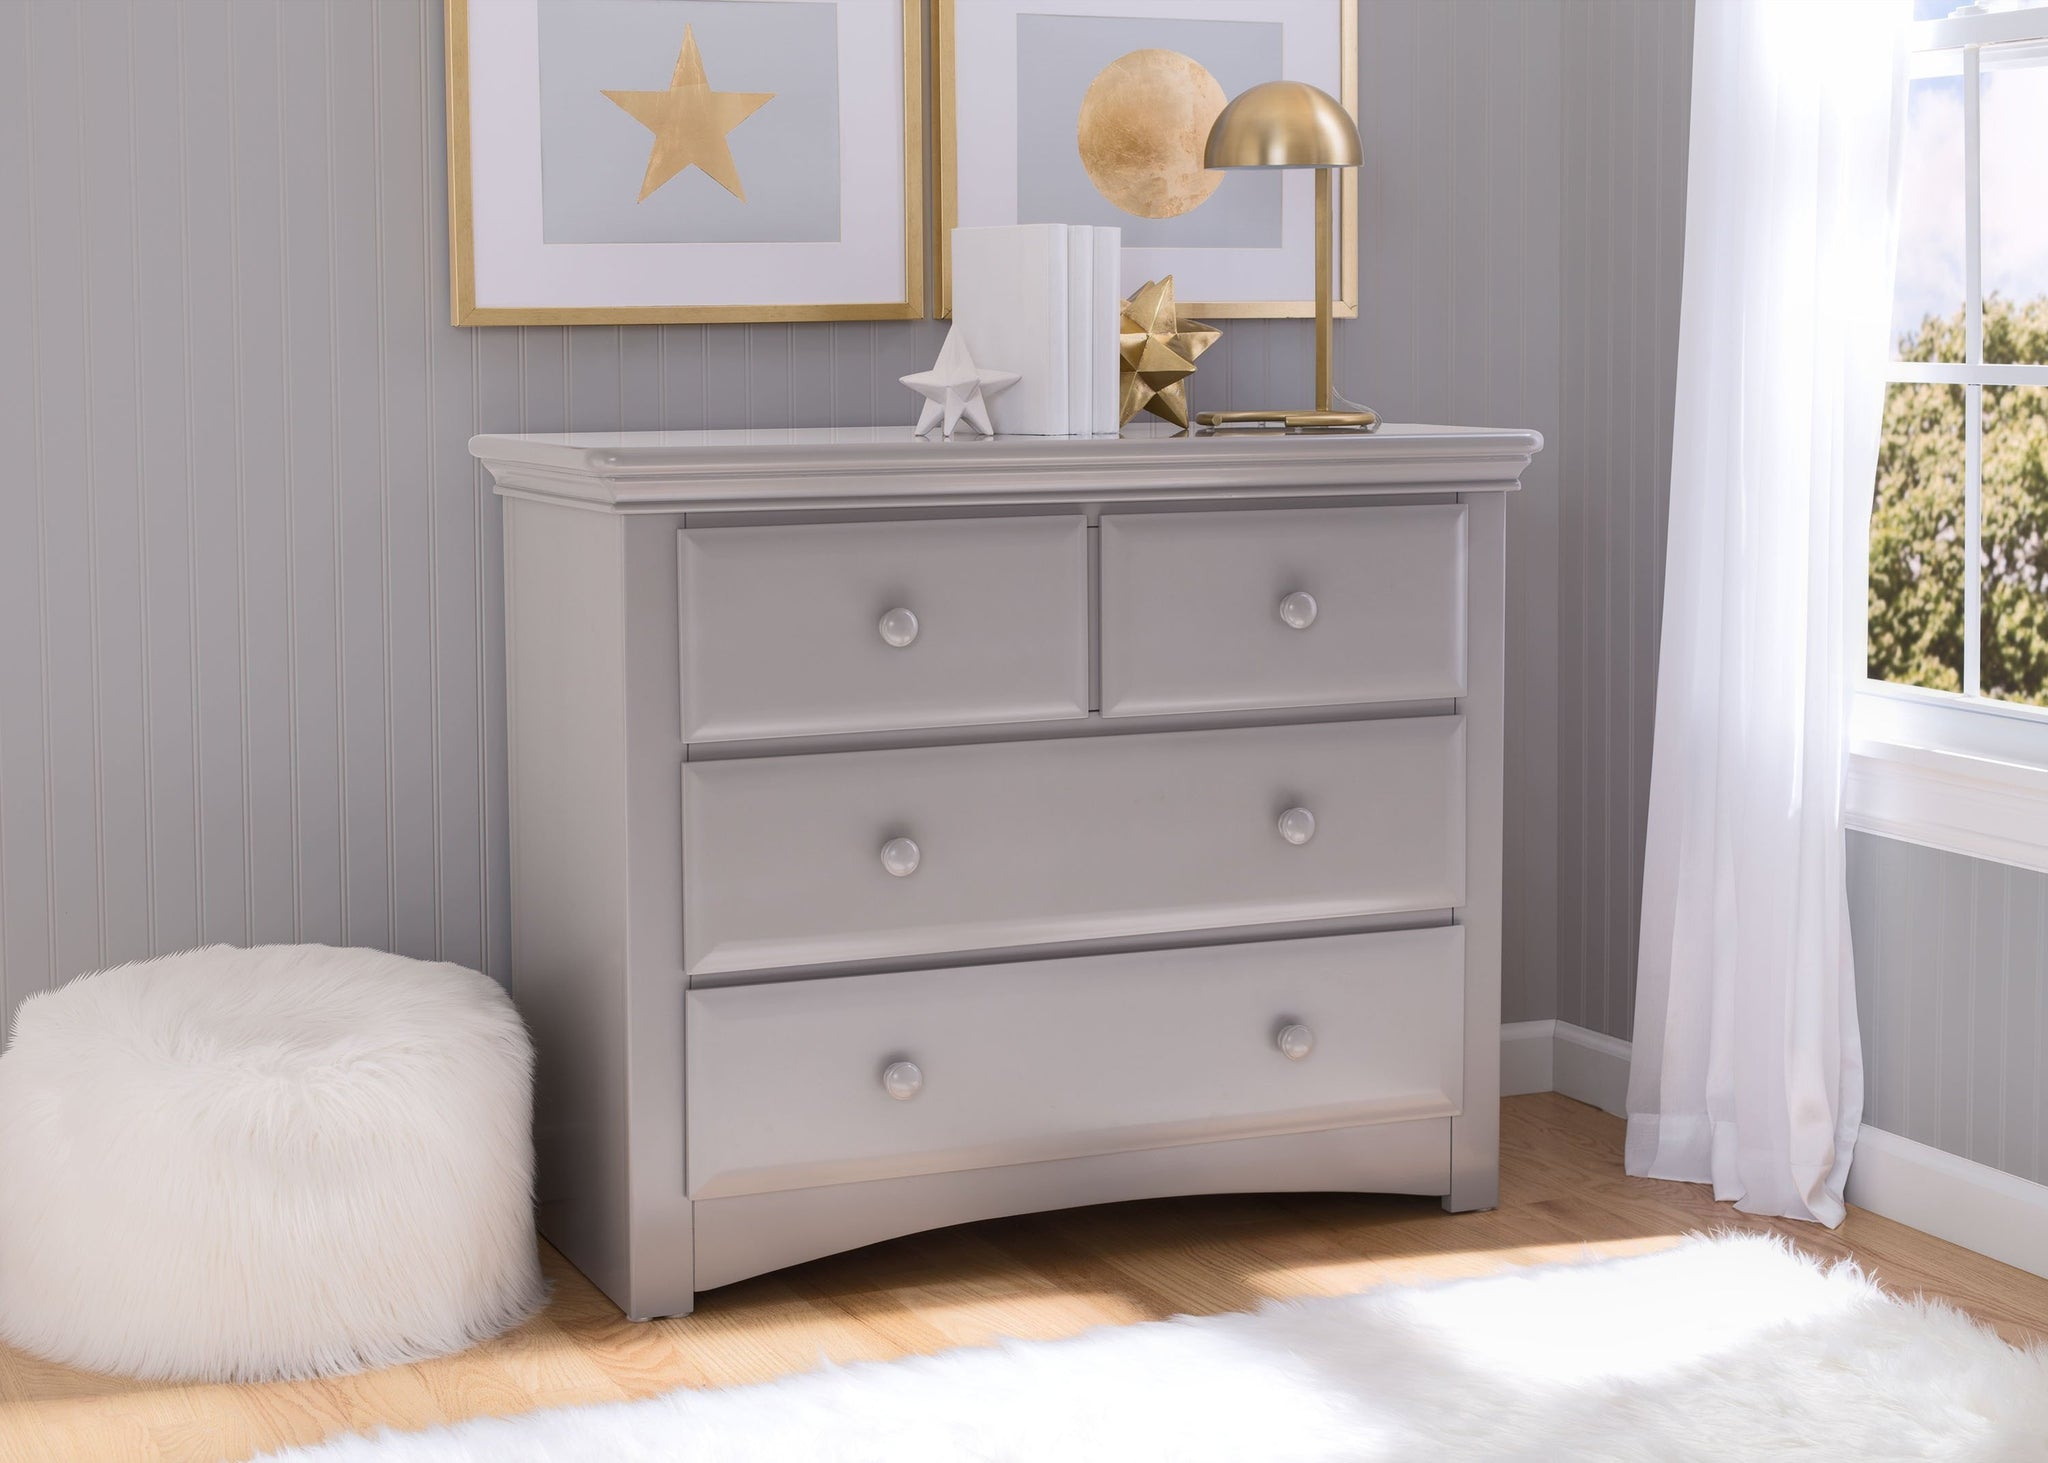 Serta Grey (026) Park Ridge 4 Drawer Dresser (702640), Room, a1a